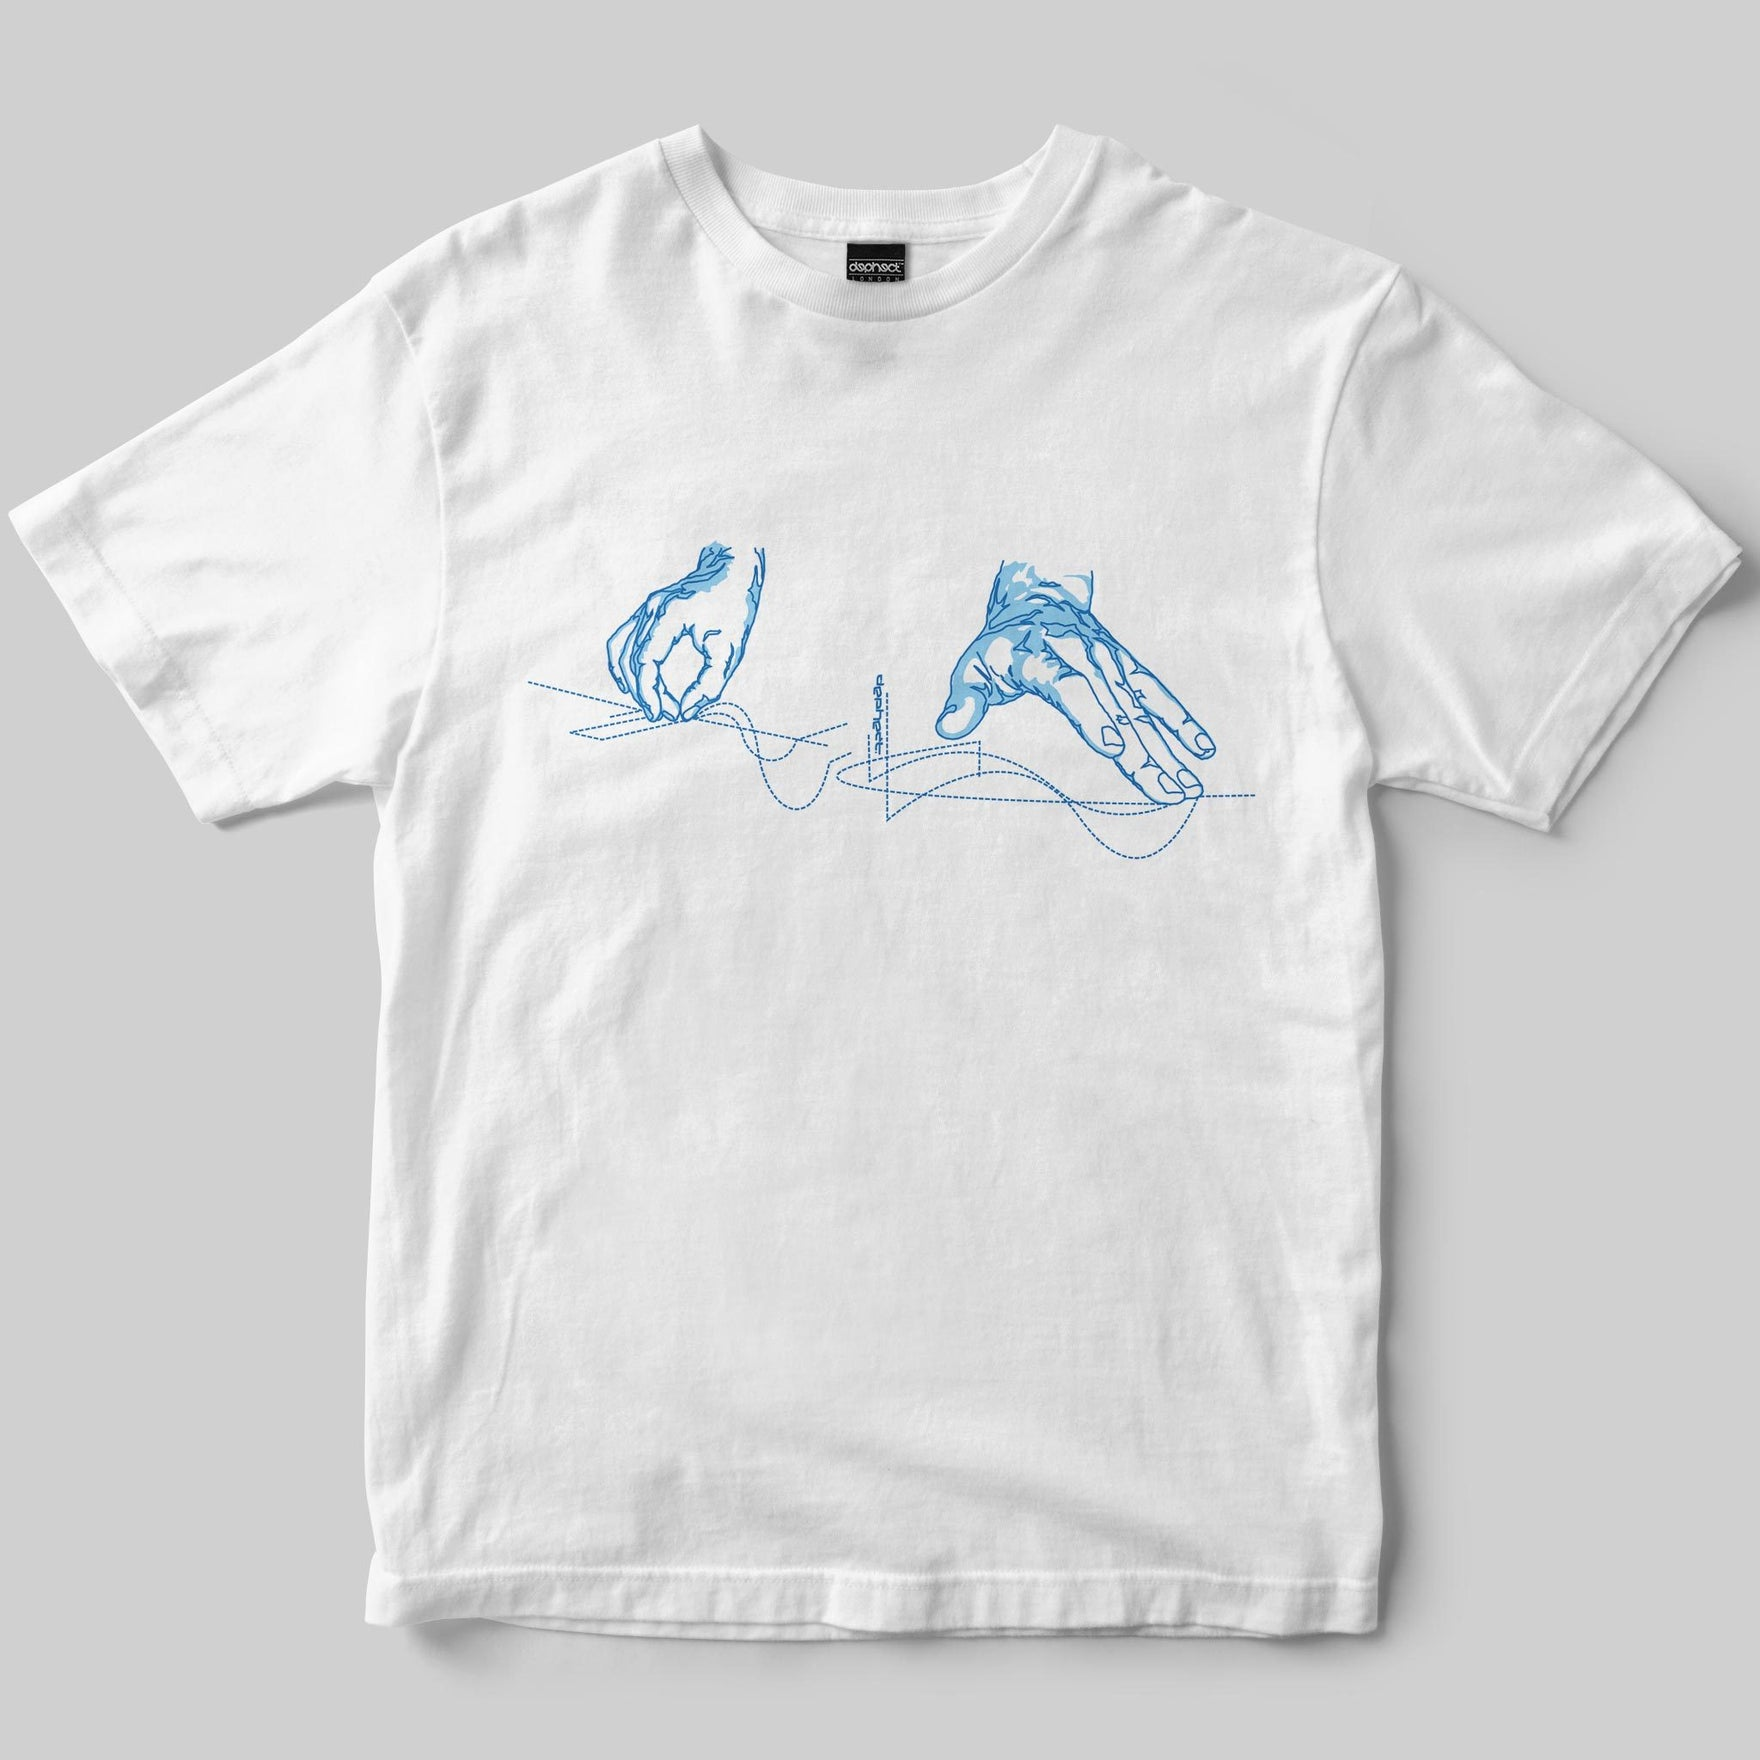 Scratch T-Shirt / White / by Keshone